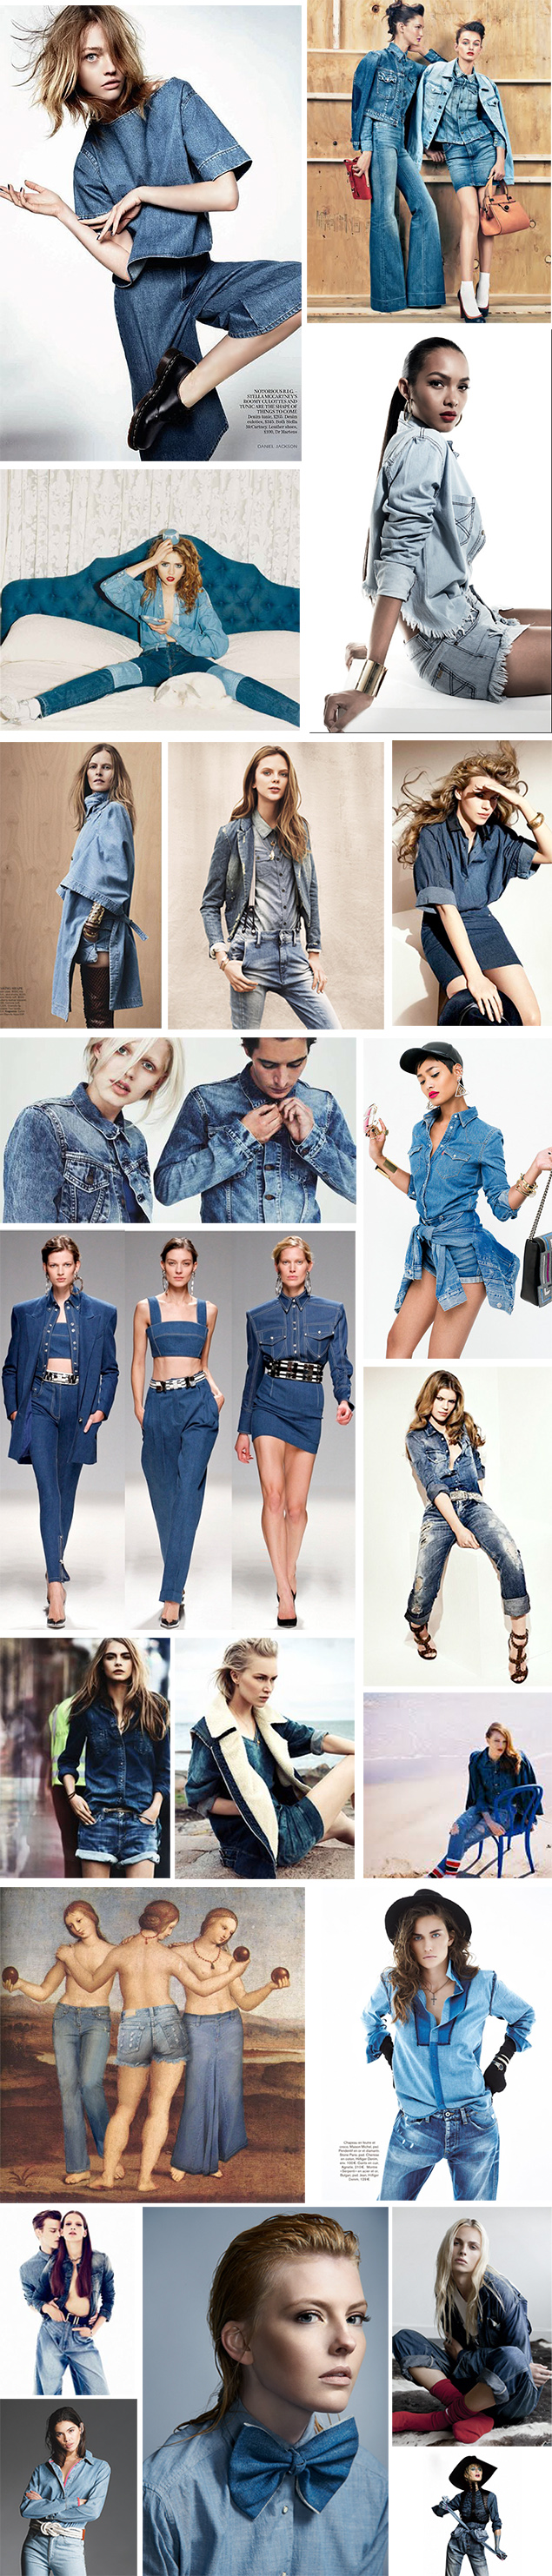 denim on denim fashion editorial